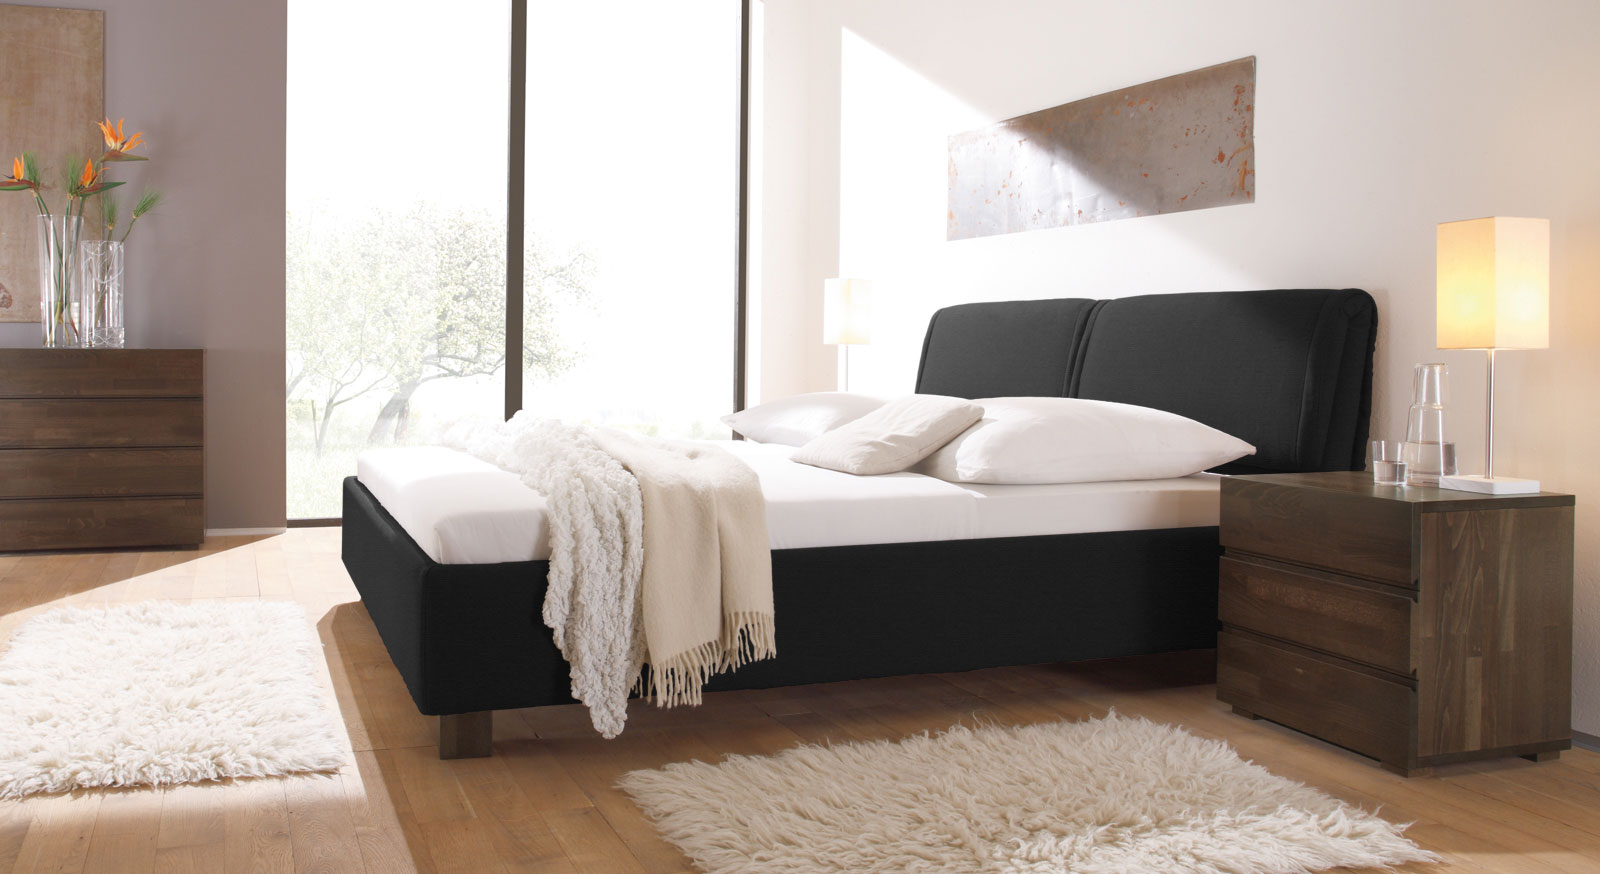 m belfreude boxspringbett bea gesteppt 7 zonen taschenfederkern visco topper polsterbett. Black Bedroom Furniture Sets. Home Design Ideas